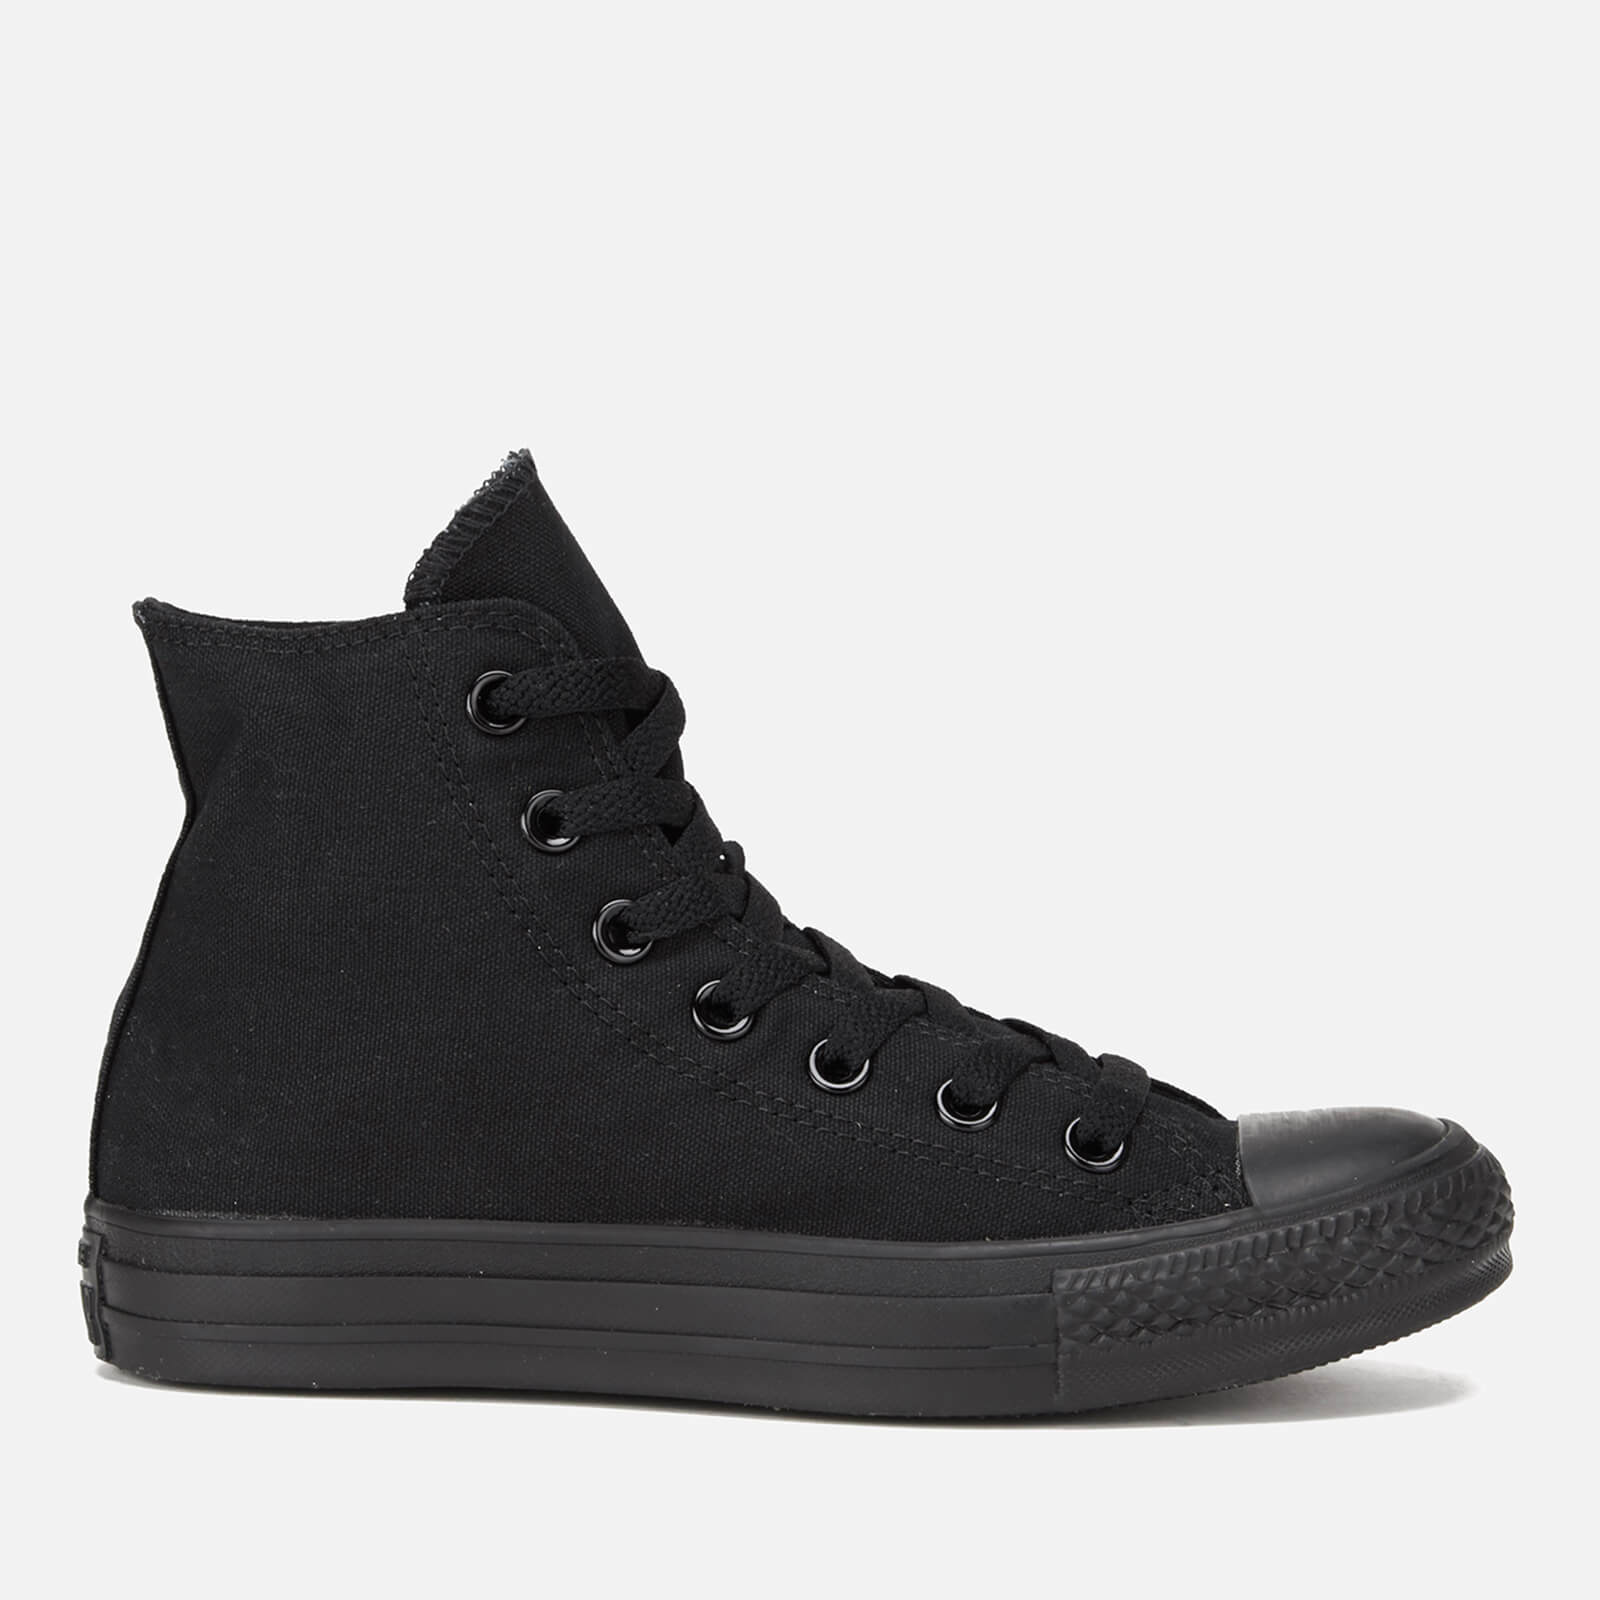 66954f5fa7eb Converse All Star Canvas Hi-Top Trainers - Black Monochrome